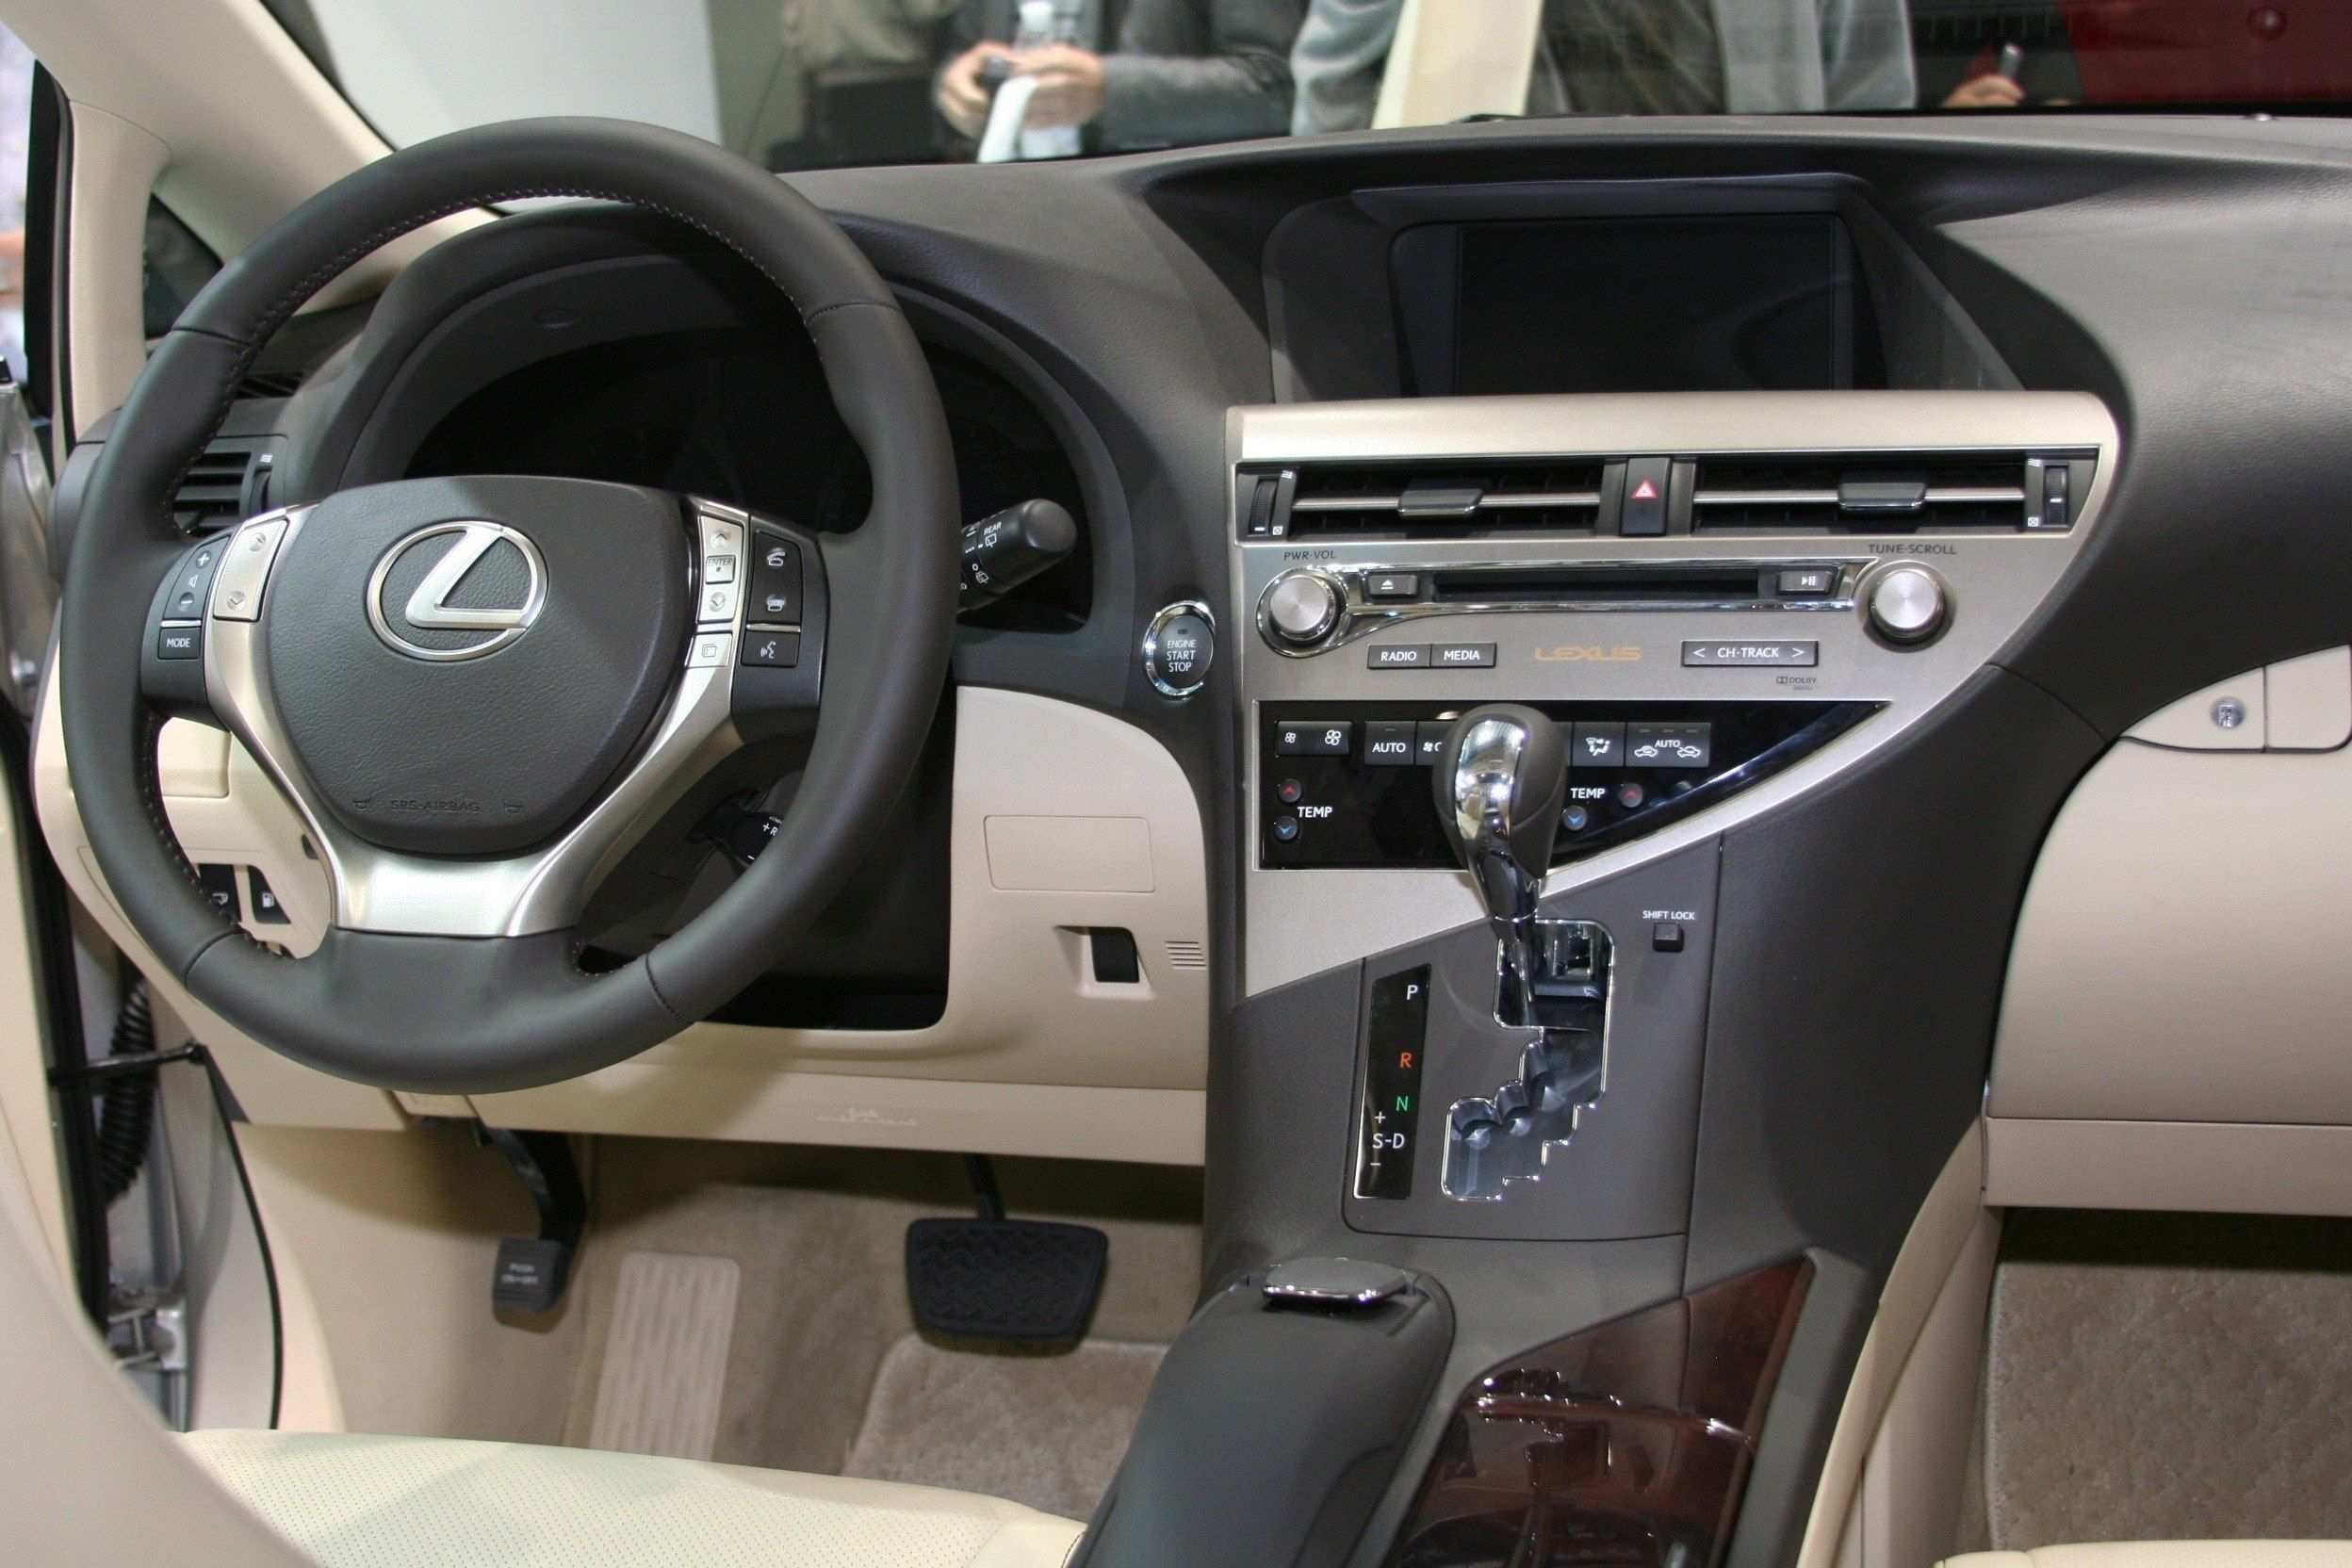 45 Concept of 2020 Lexus Lx 570 Release Date Configurations by 2020 Lexus Lx 570 Release Date